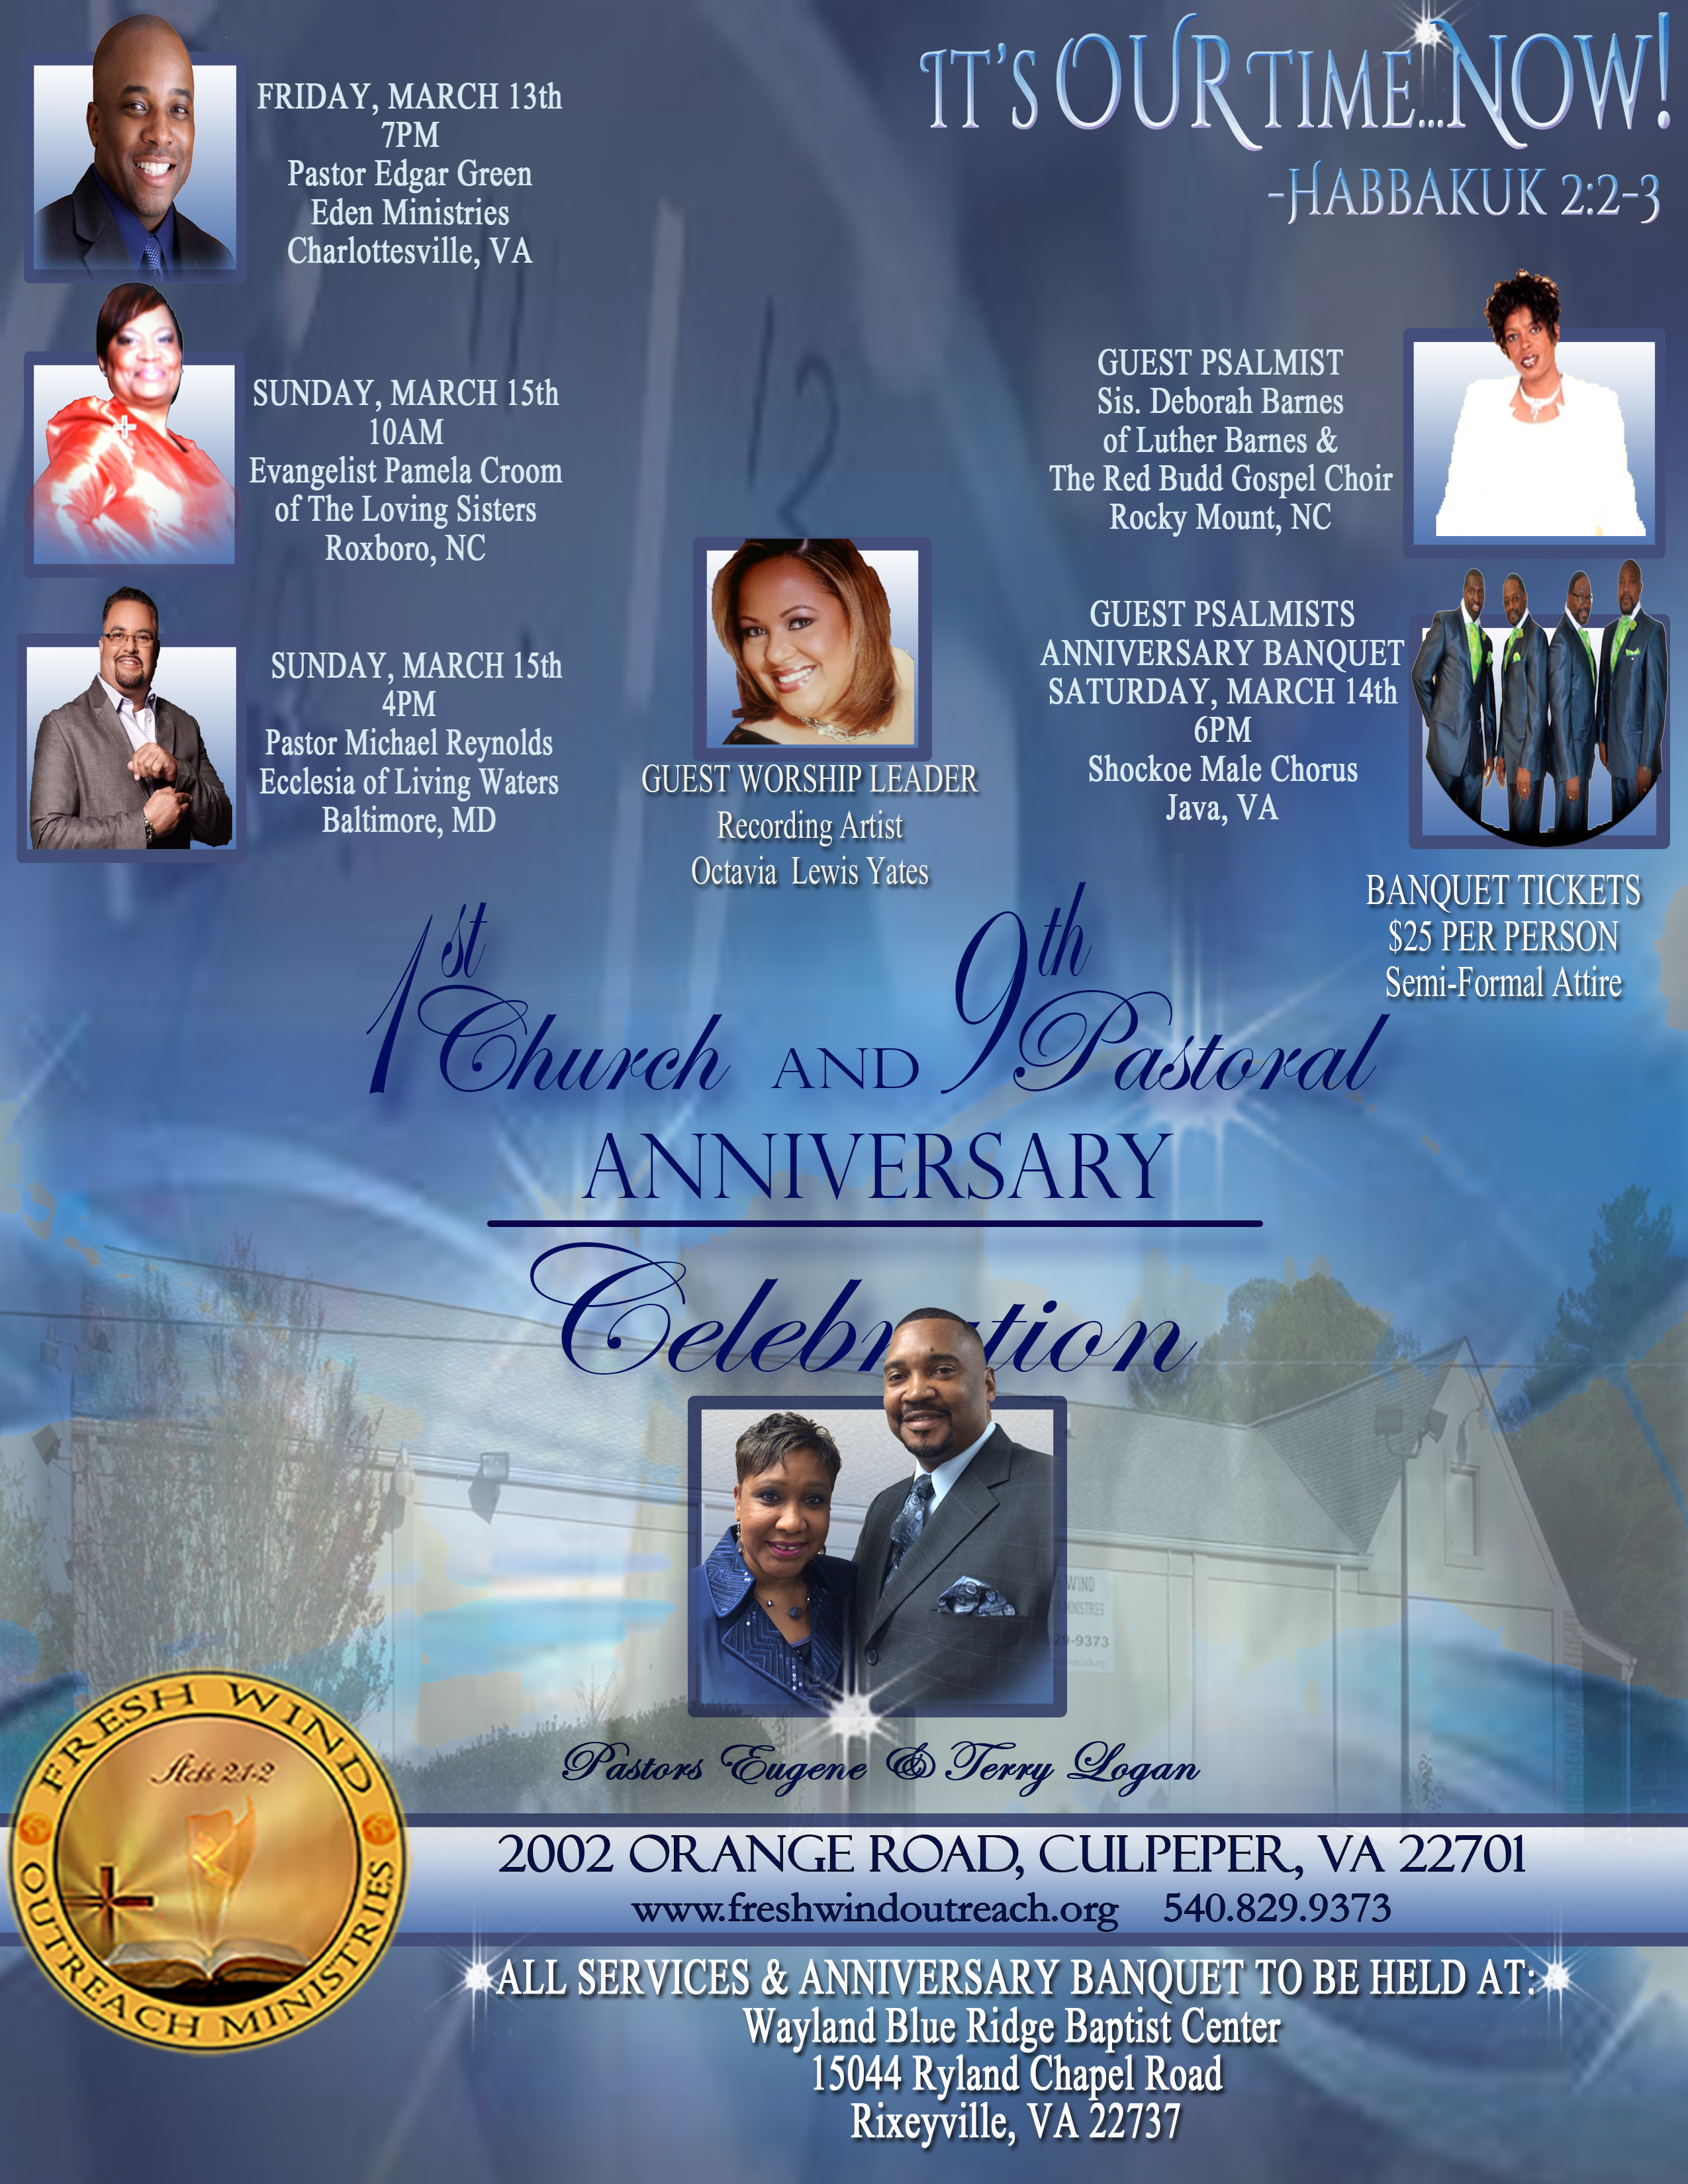 fresh wind outreach ministries 1st church and 9th pastoral 2015 anniversary celebration flyer final revised